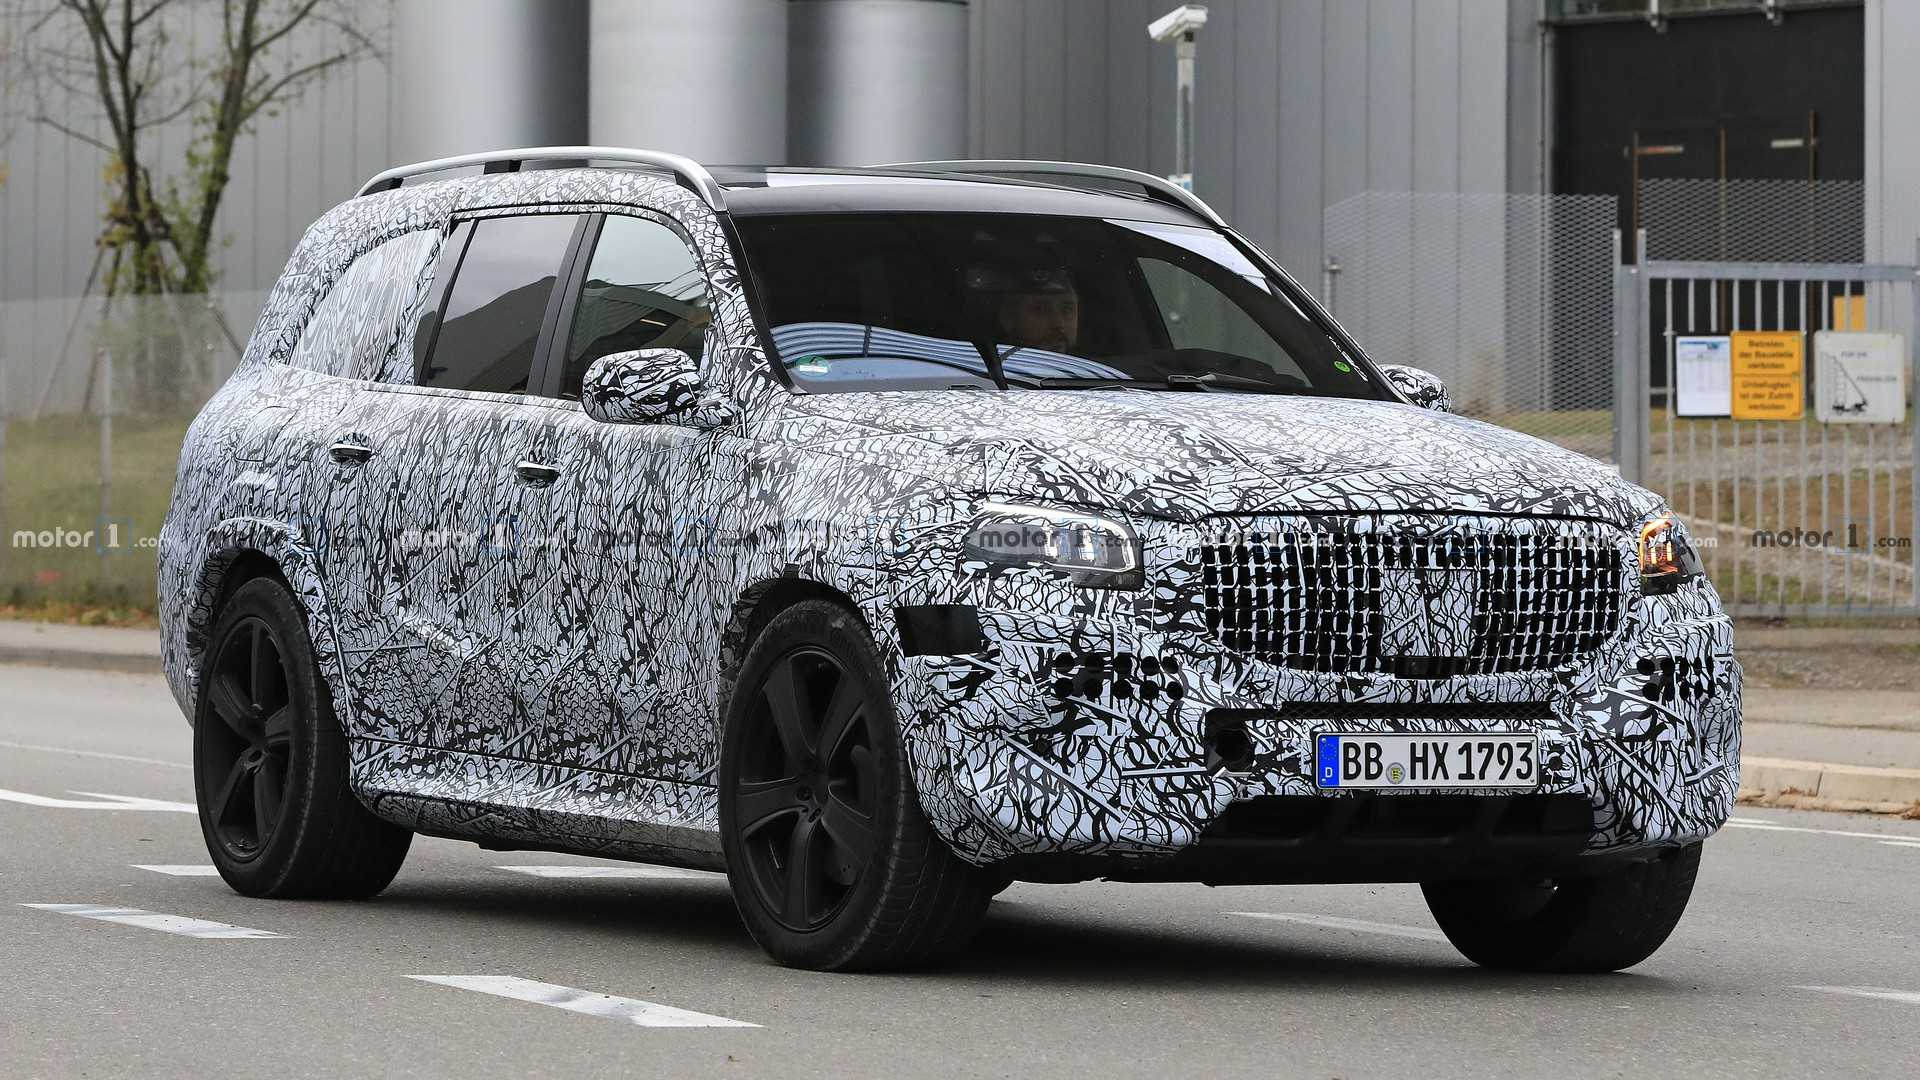 2020 Mercedes-Maybach GLS Spied on the Road